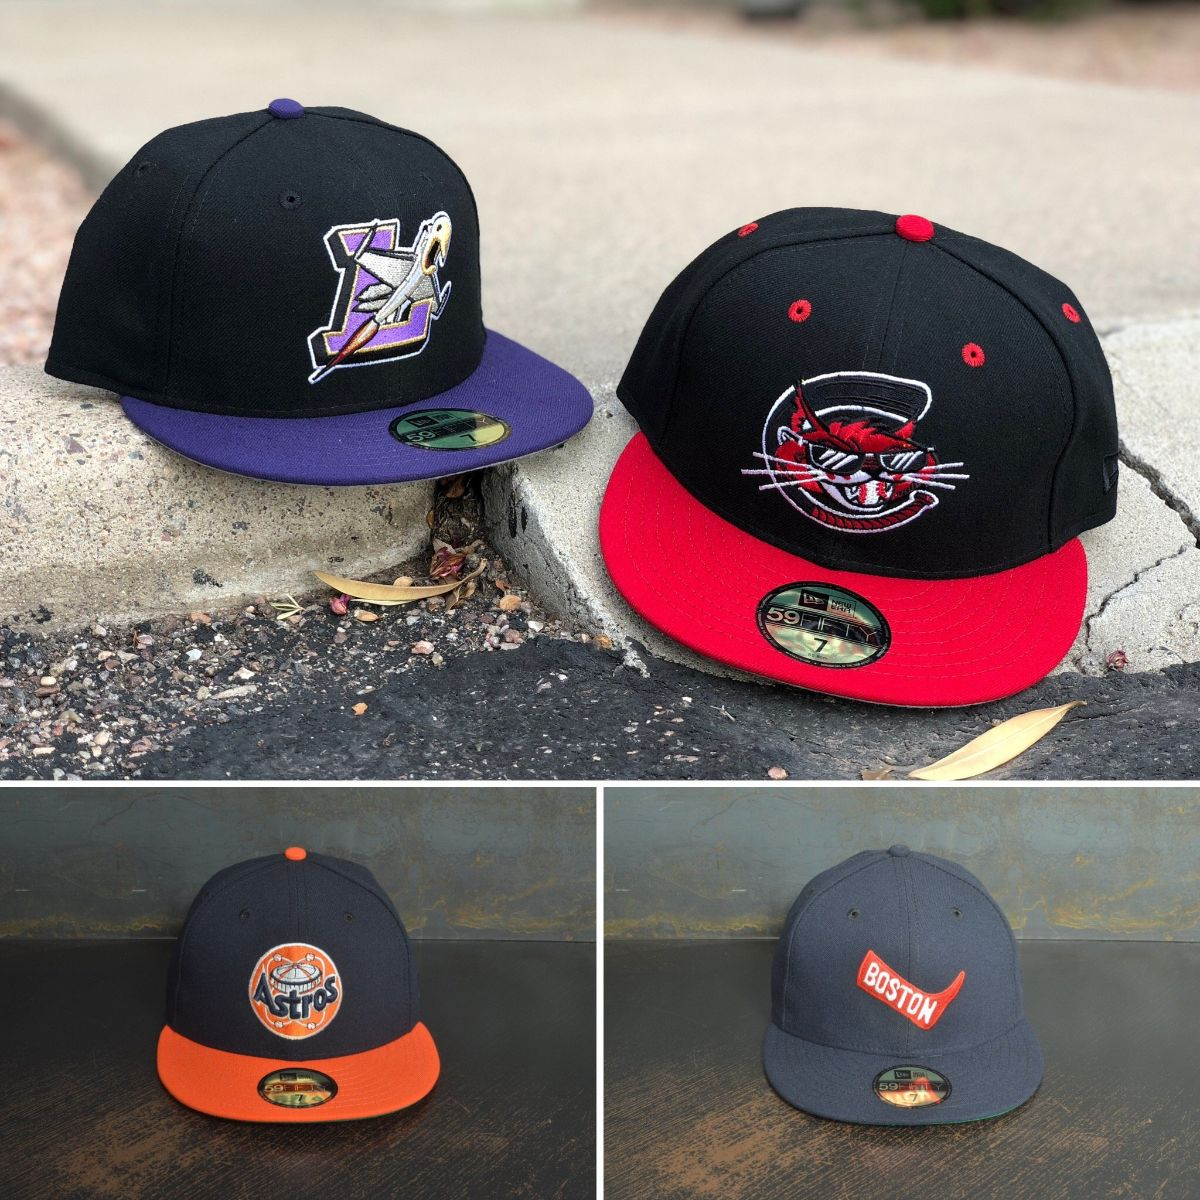 8f2e94d86c069c The newest Hat Club Exclusive Collection drops today at 11am PST. Today we  are featuring two teams from the MiLB and two teams from the MLB.